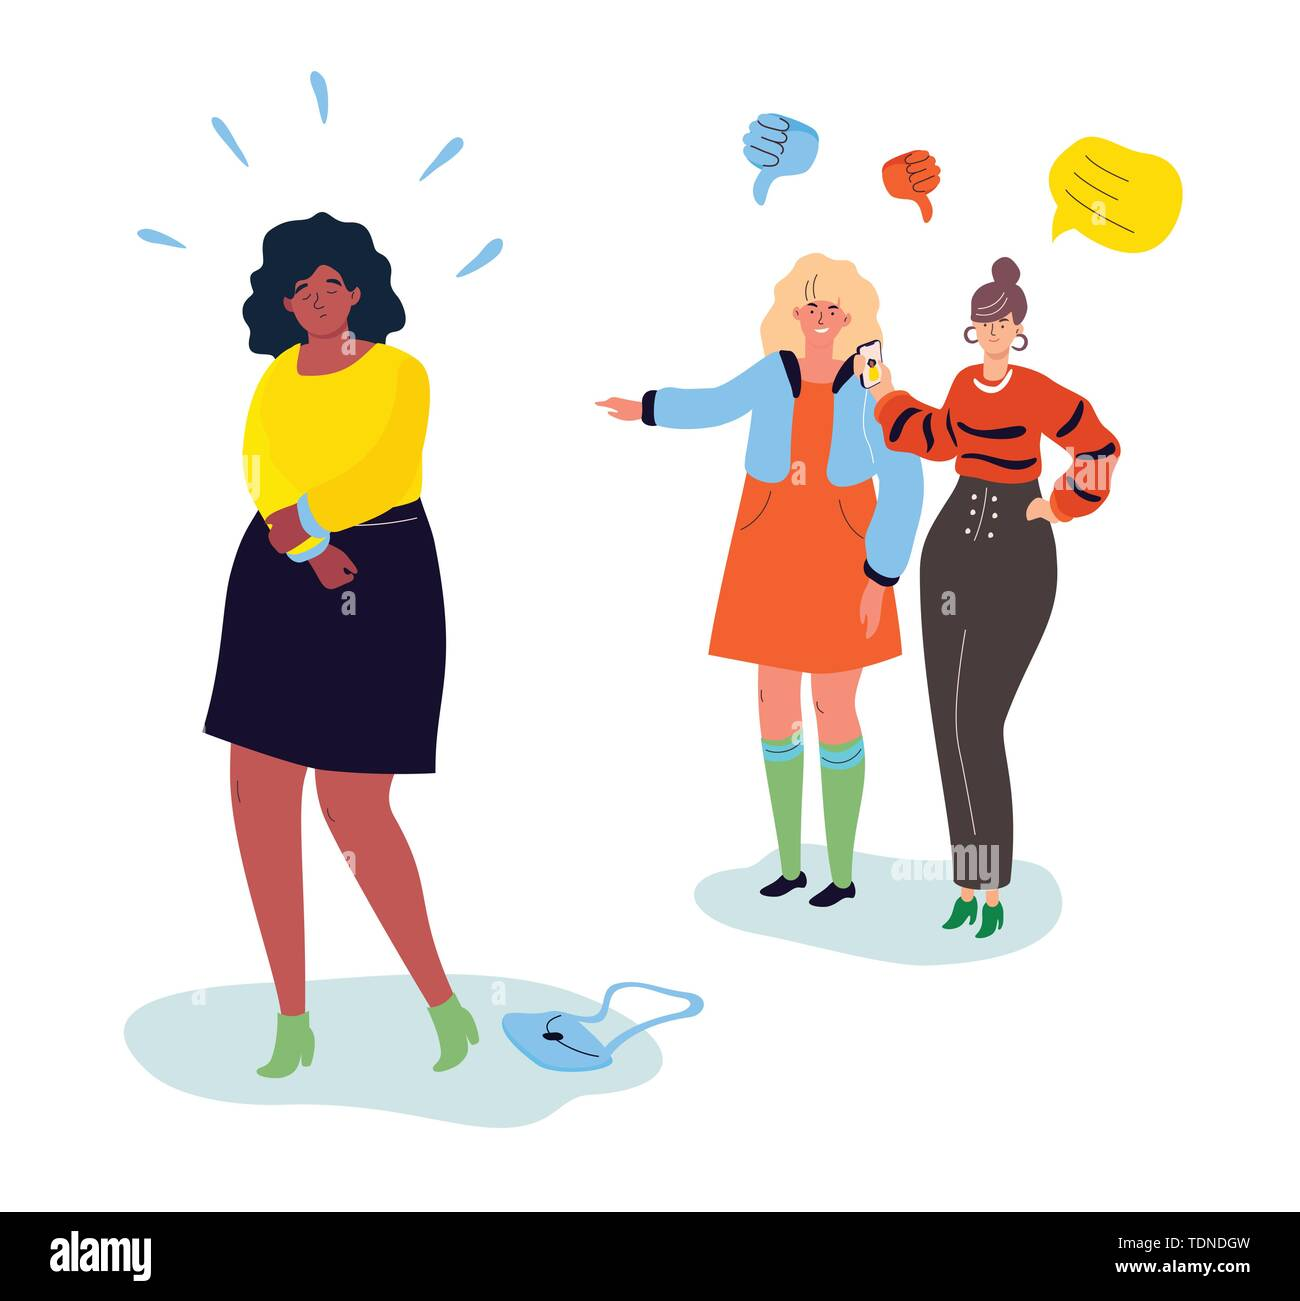 Bullying - modern colorful flat design style illustration on white background. A composition with teenagers mocking a girl, pointing and laughing at h - Stock Image